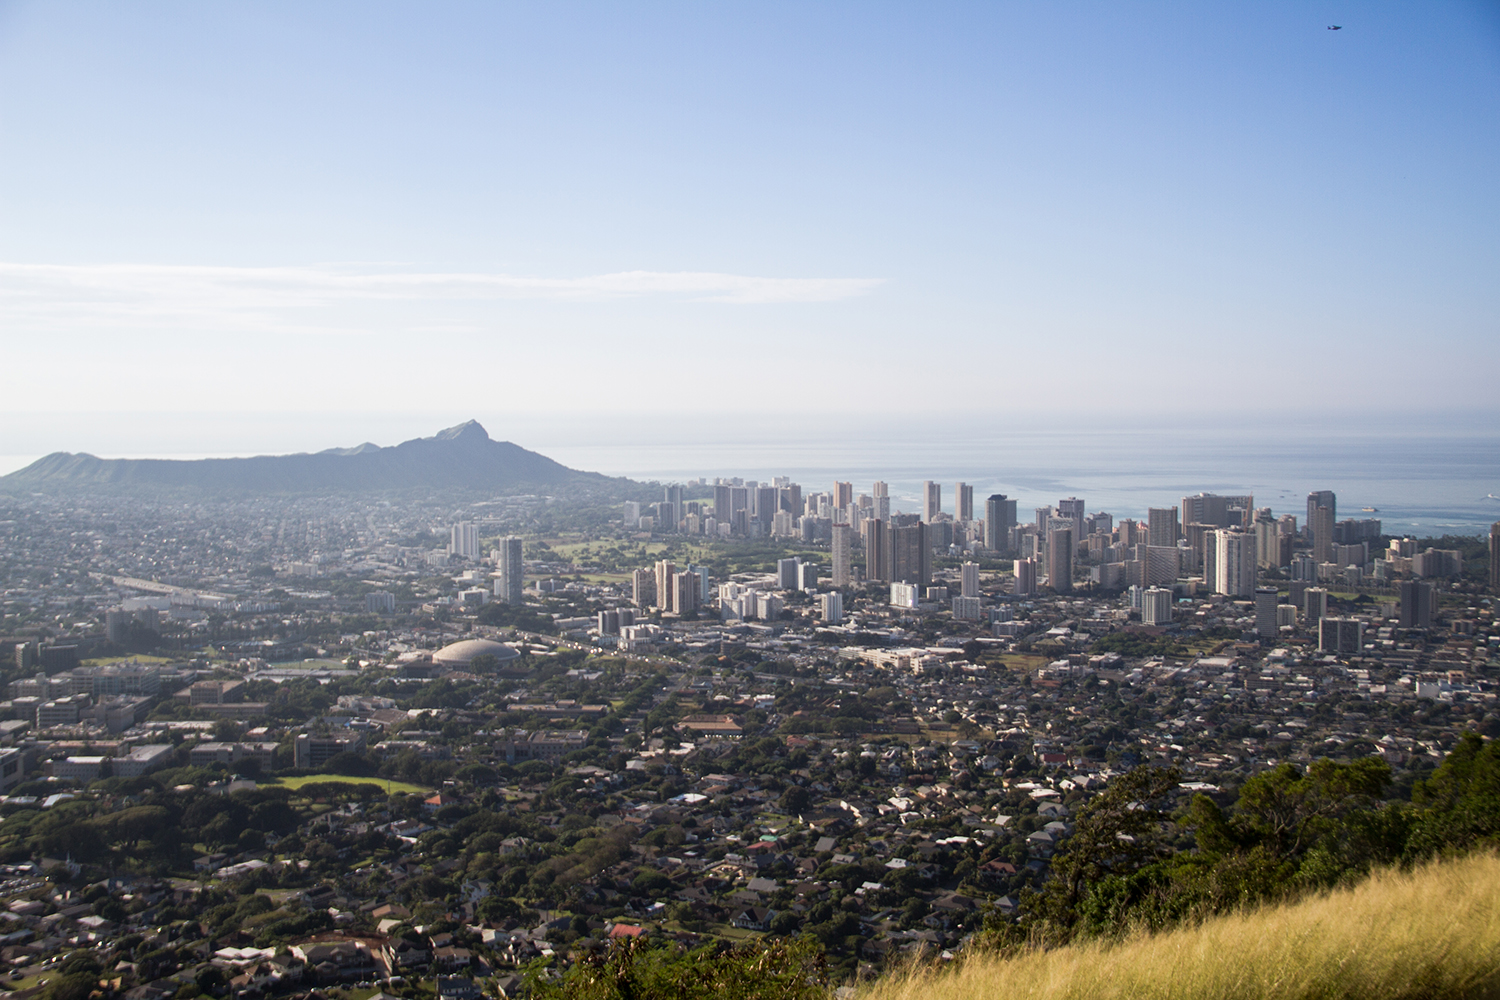 View of Diamond Head & Waikiki from the top of Tantalus. (Can you spot the teeny tiny plane in the sky?)